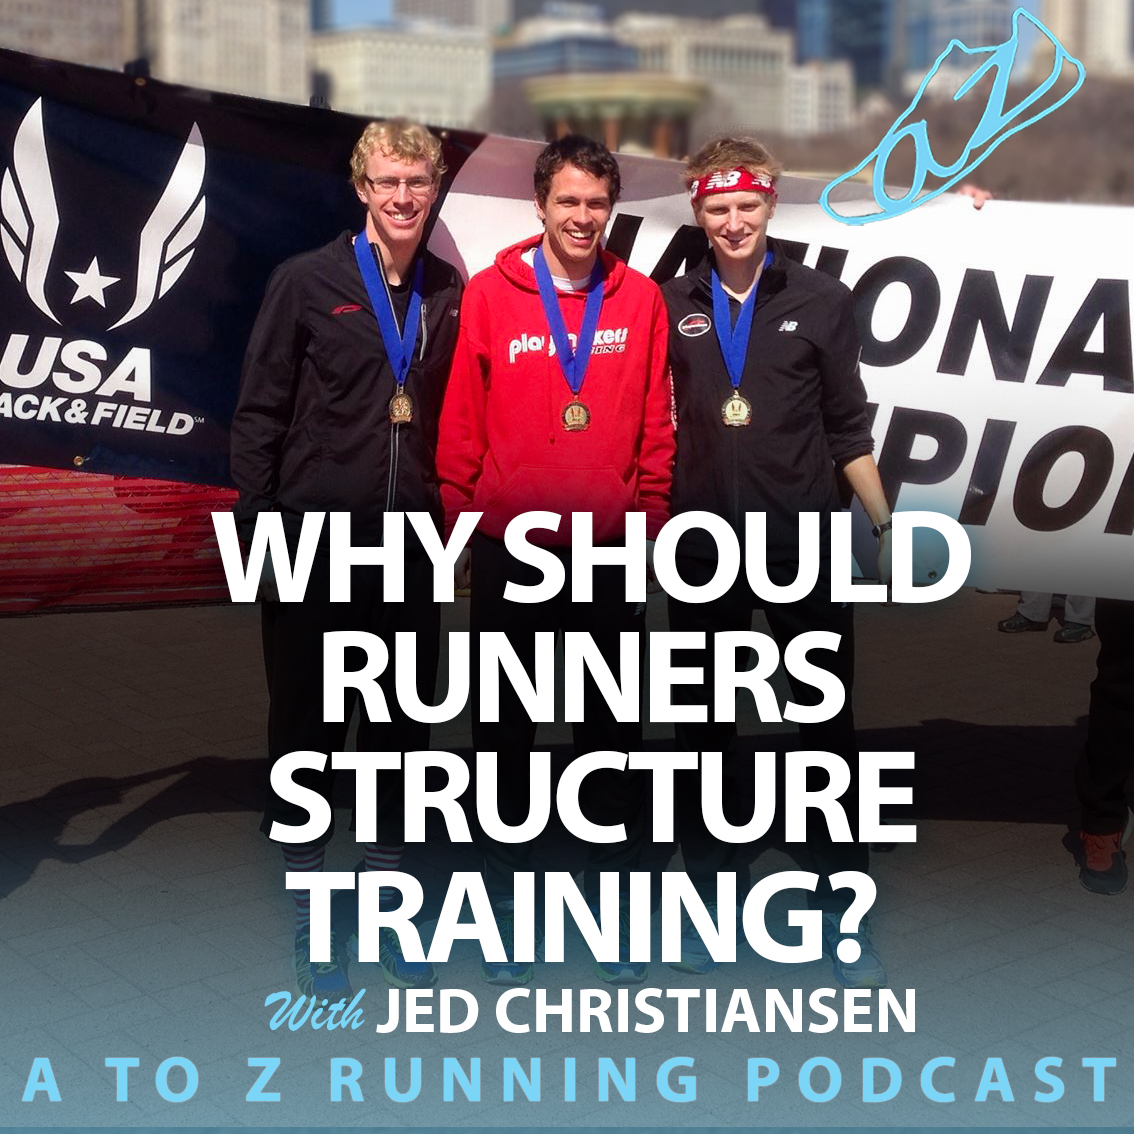 Why should runners structure training?